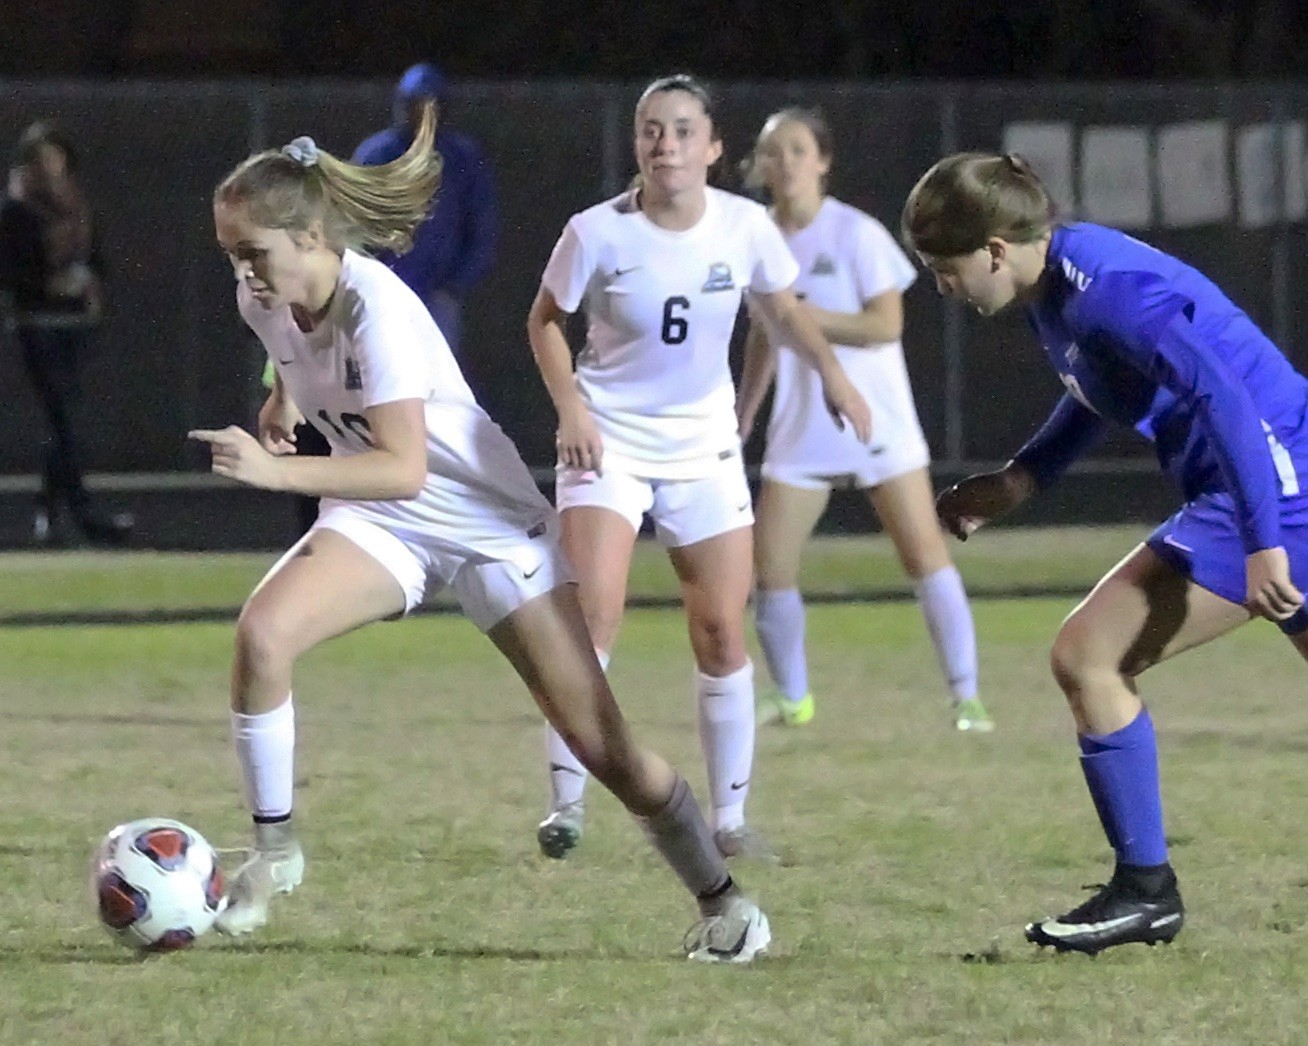 The Sharks' Kai Hayes races past the Pedro defender as Molly Miller looks on.